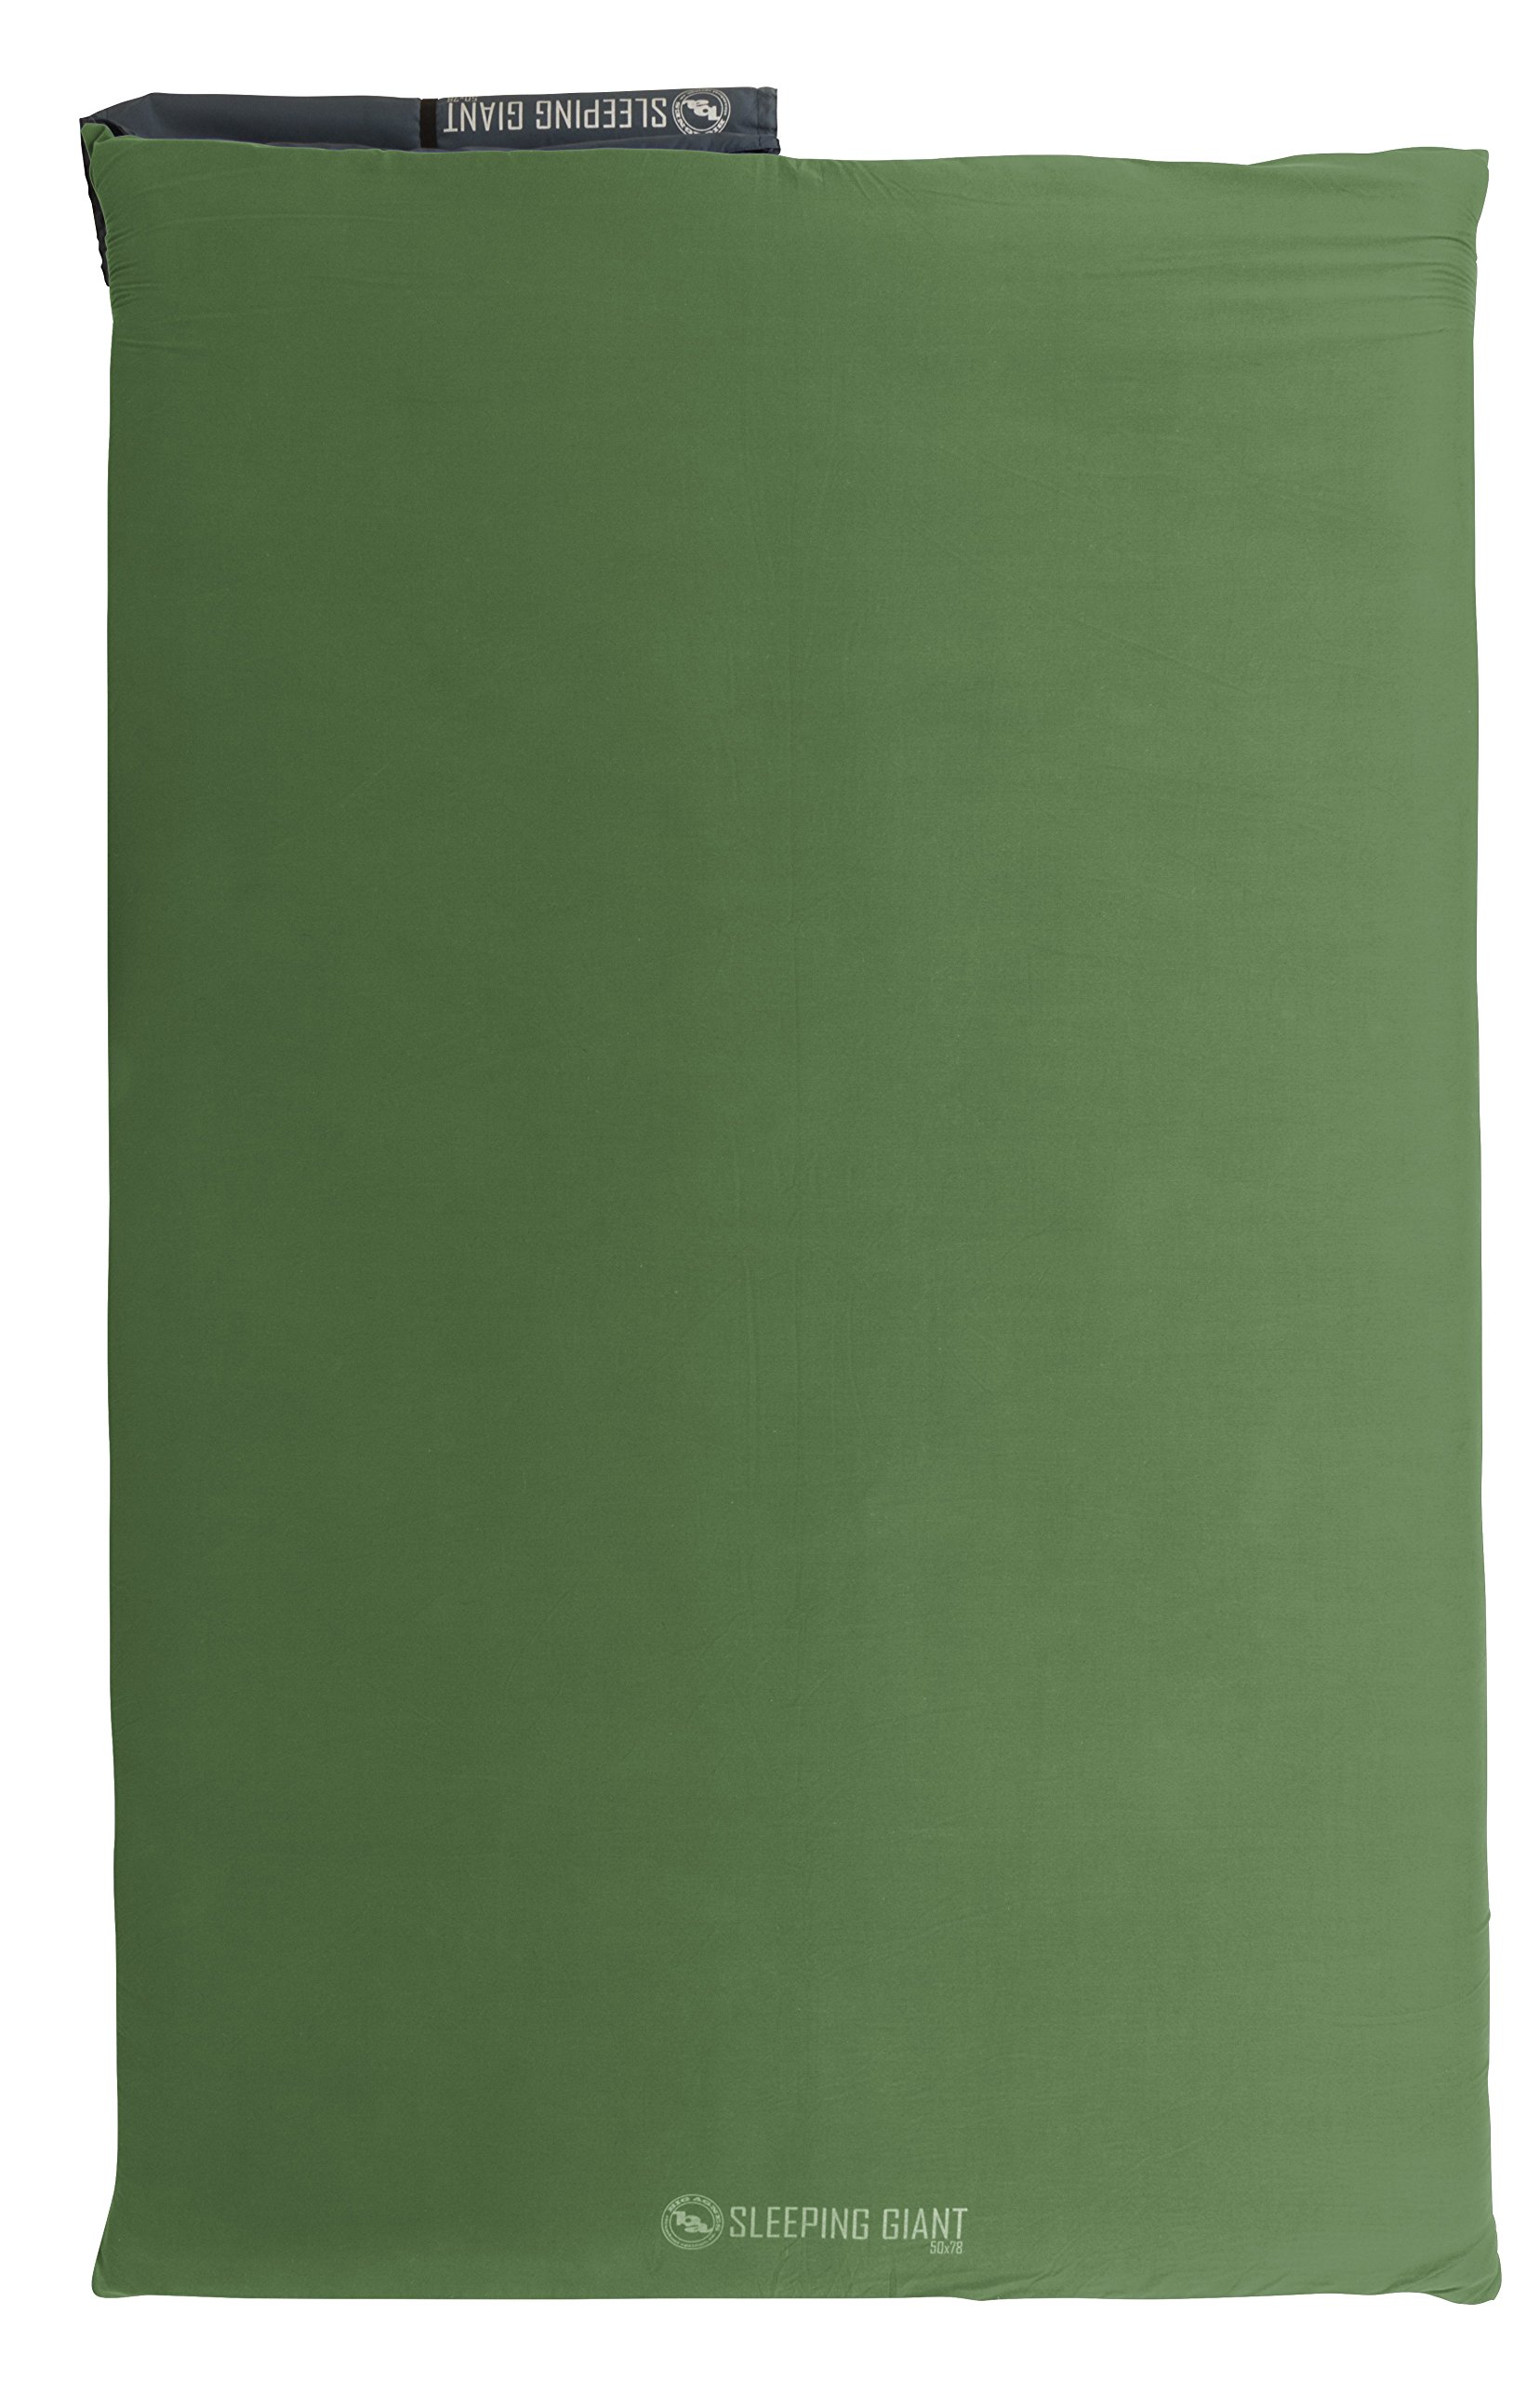 Big Agnes Sleeping Giant Memory Foam Pad Cover, Green/Blue, 50x78 Double Wide by Big Agnes